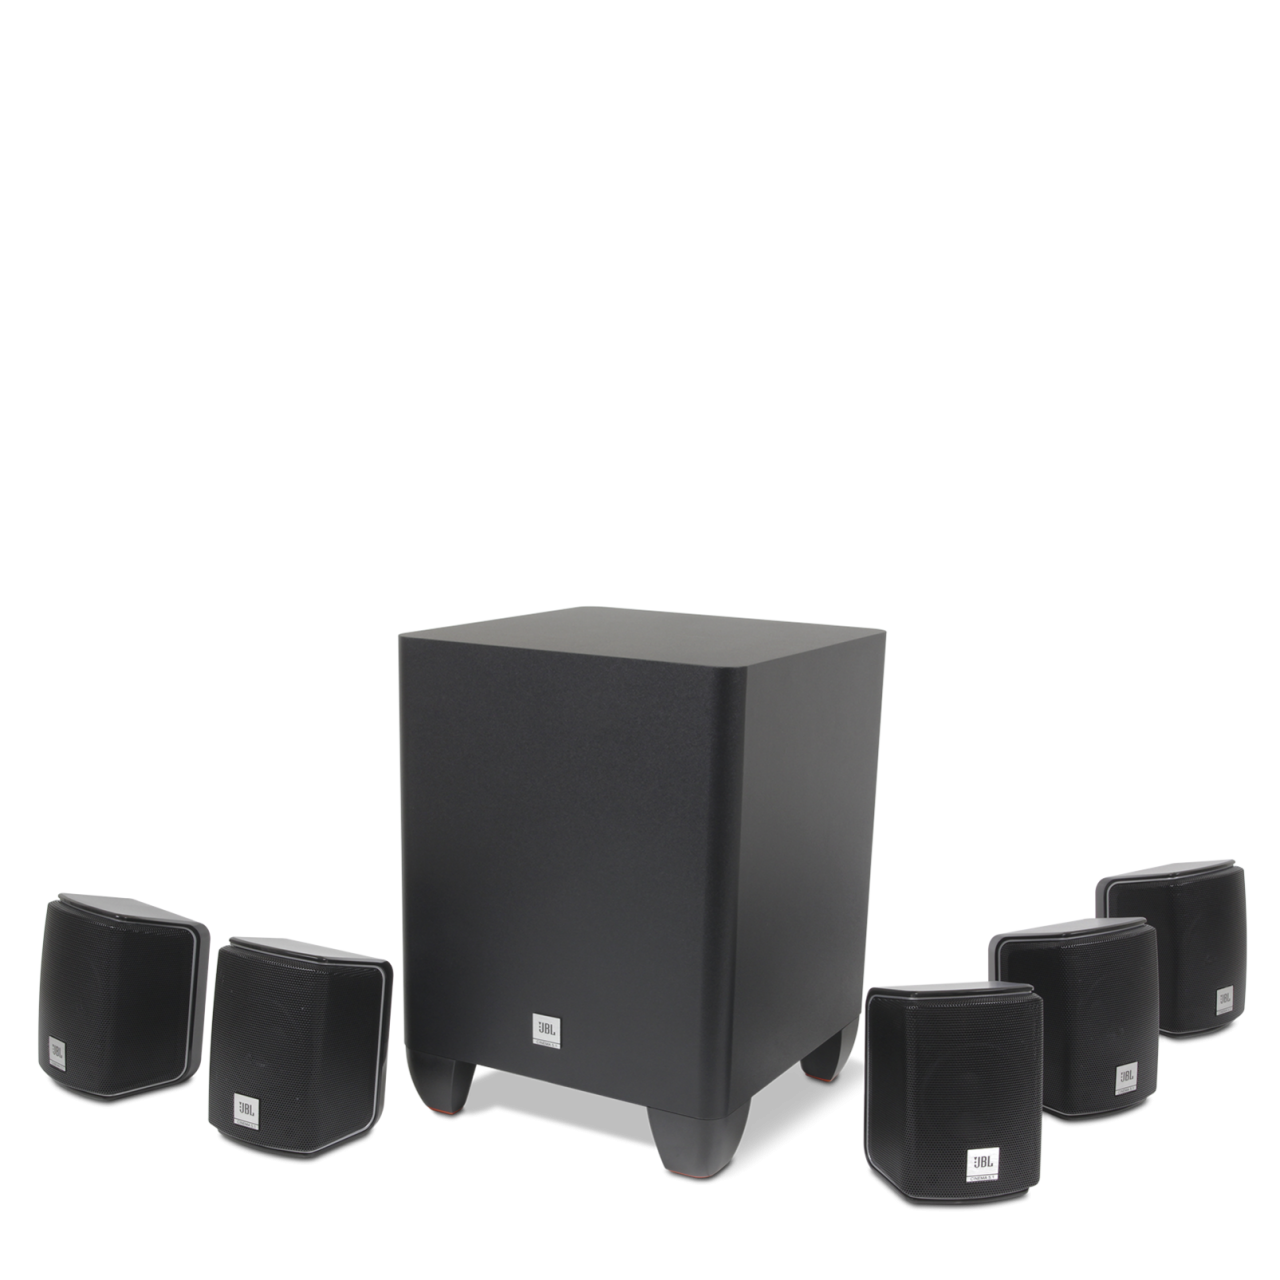 harman kardon computer speakers with subwoofer. harman kardon computer speakers with subwoofer